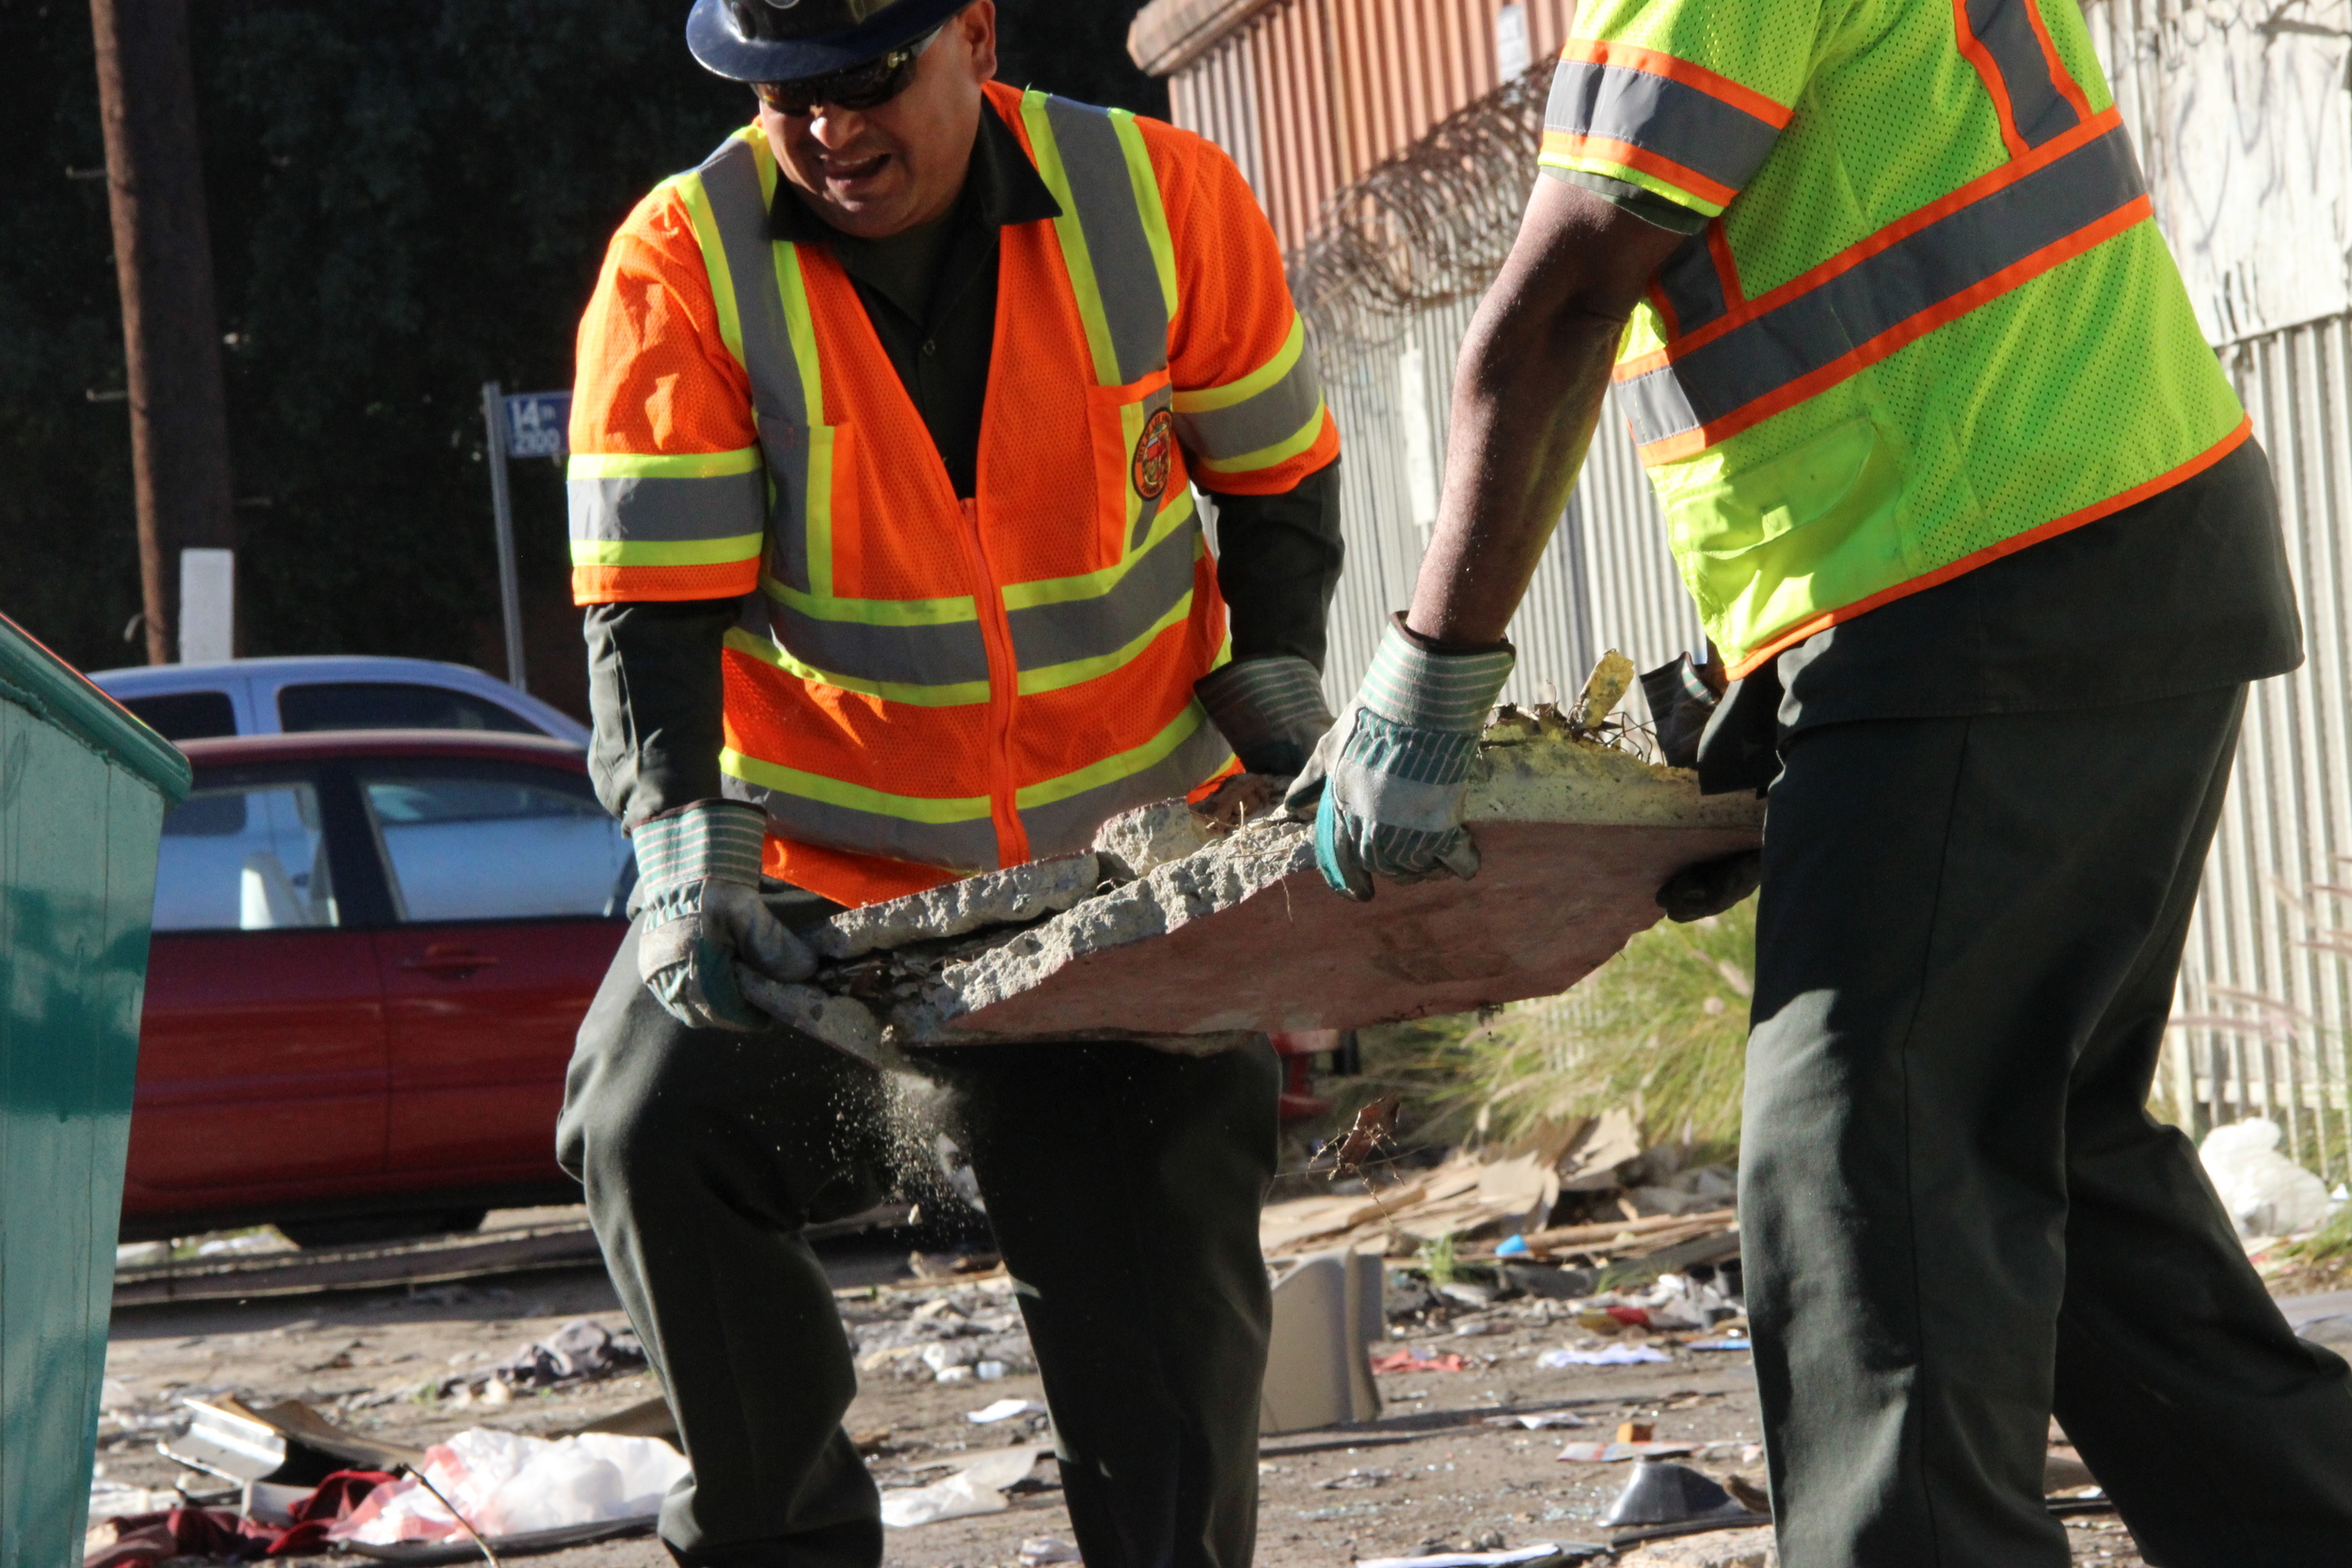 Clean Streets L.A. crew members remove construction waste and vehicle parts along with broken furniture and trash in an industrial area of Downtown Los Angeles. Every cleanup project of abandoned waste and illegal dumping presents challenges and hazards that are overcome.